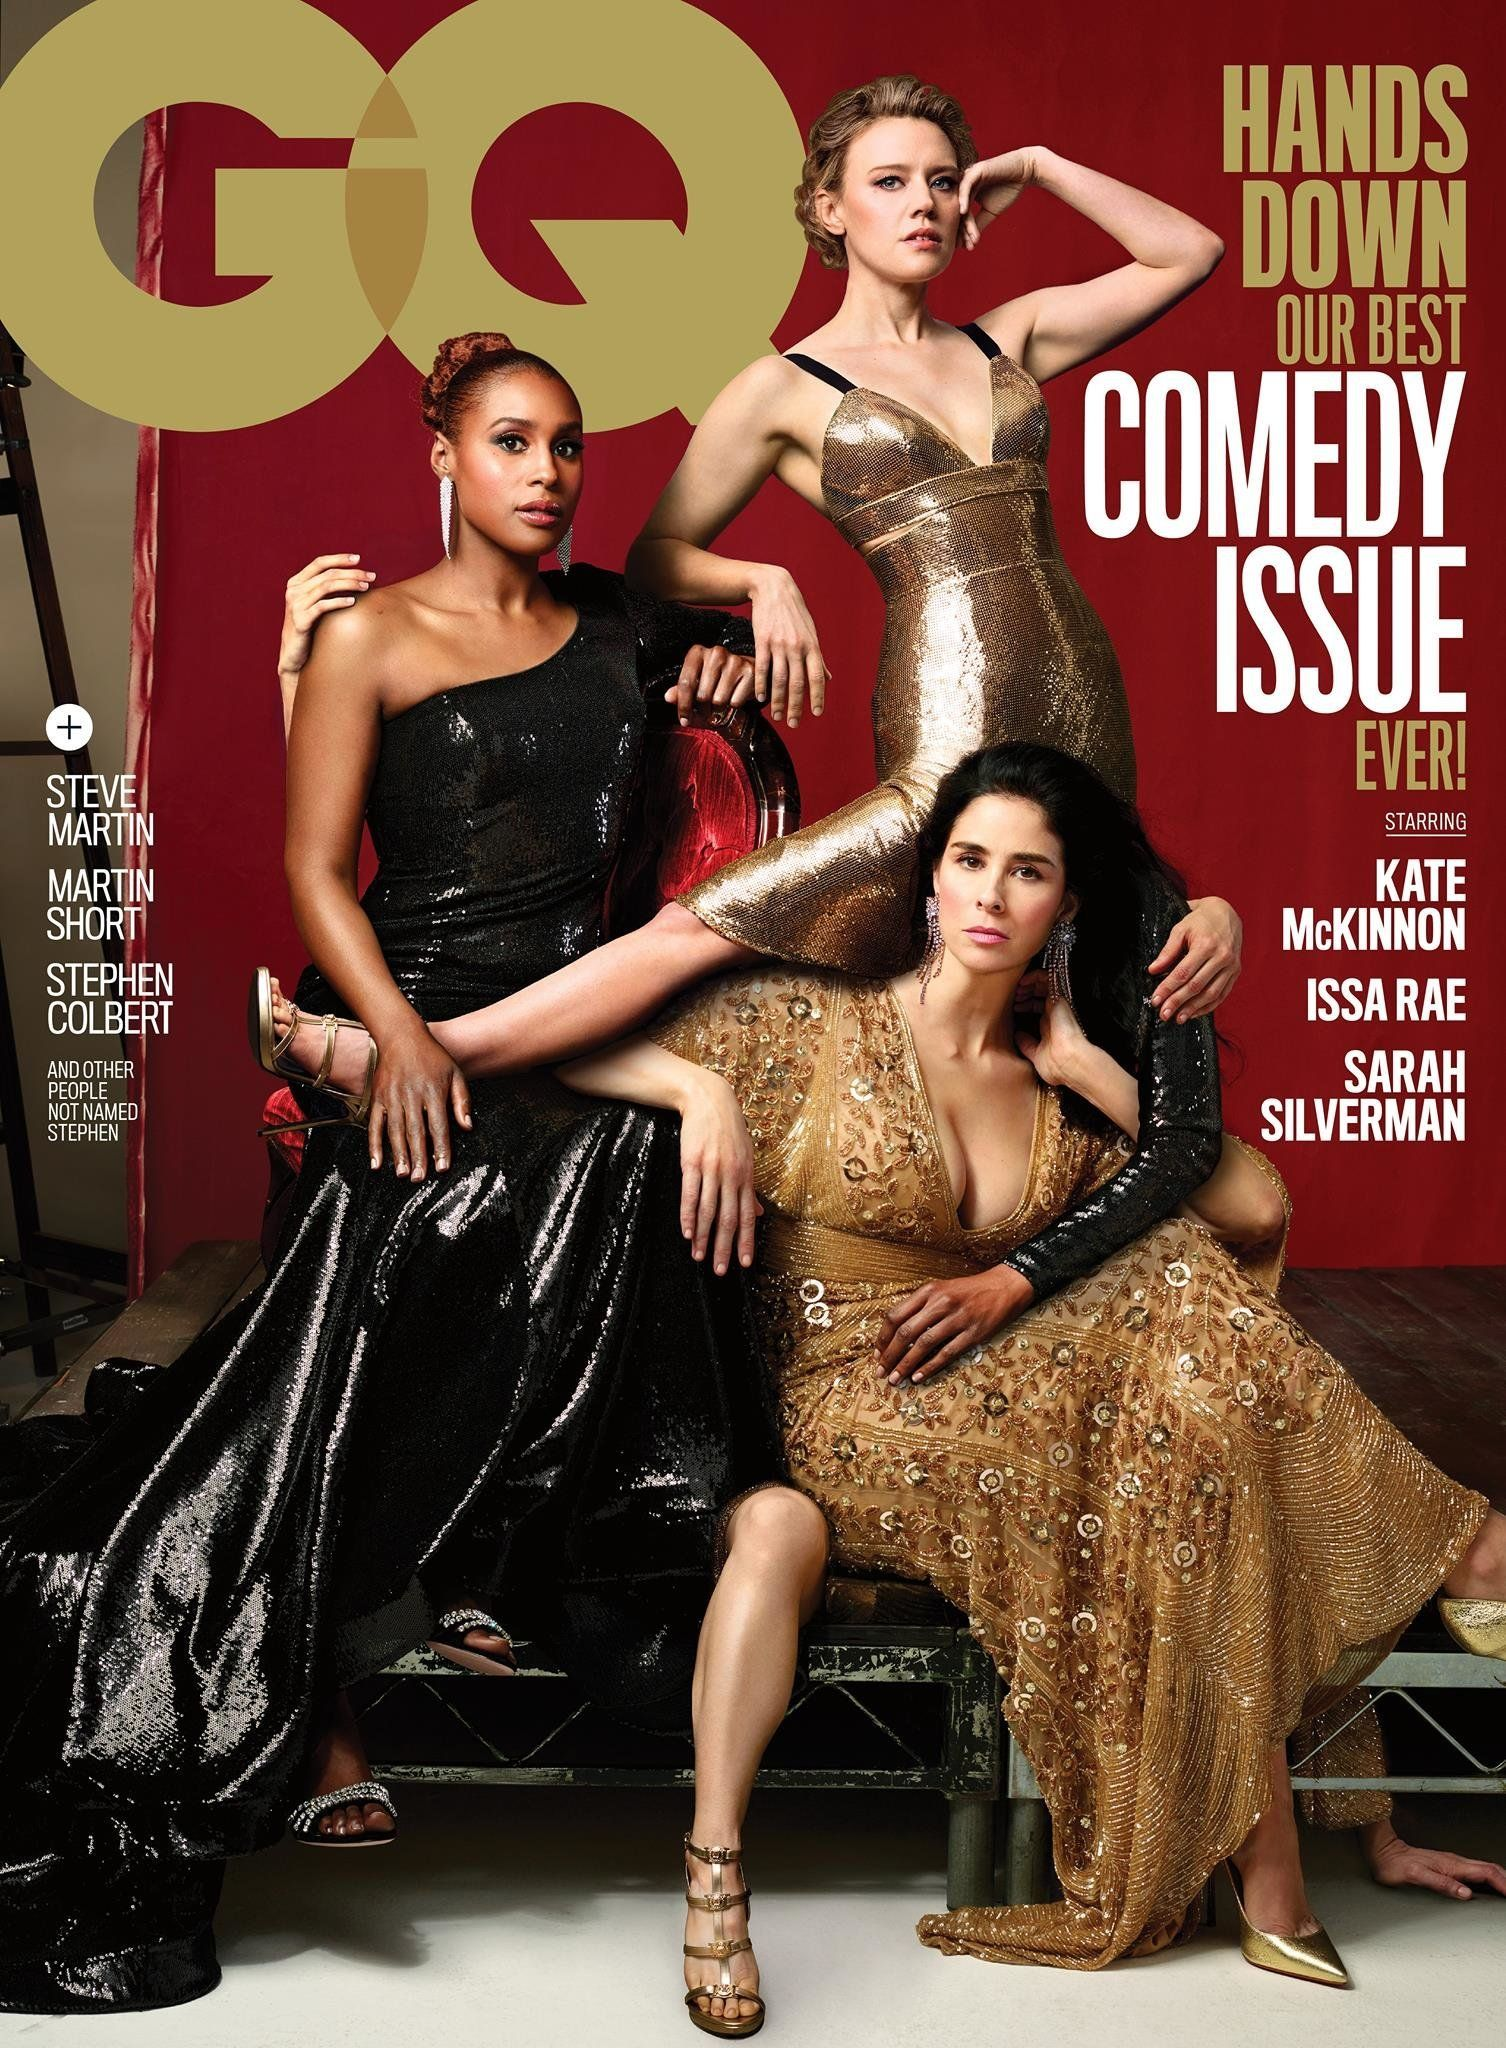 GQ Expertly Spoofs Vanity Fair With Annual Comedy Issue